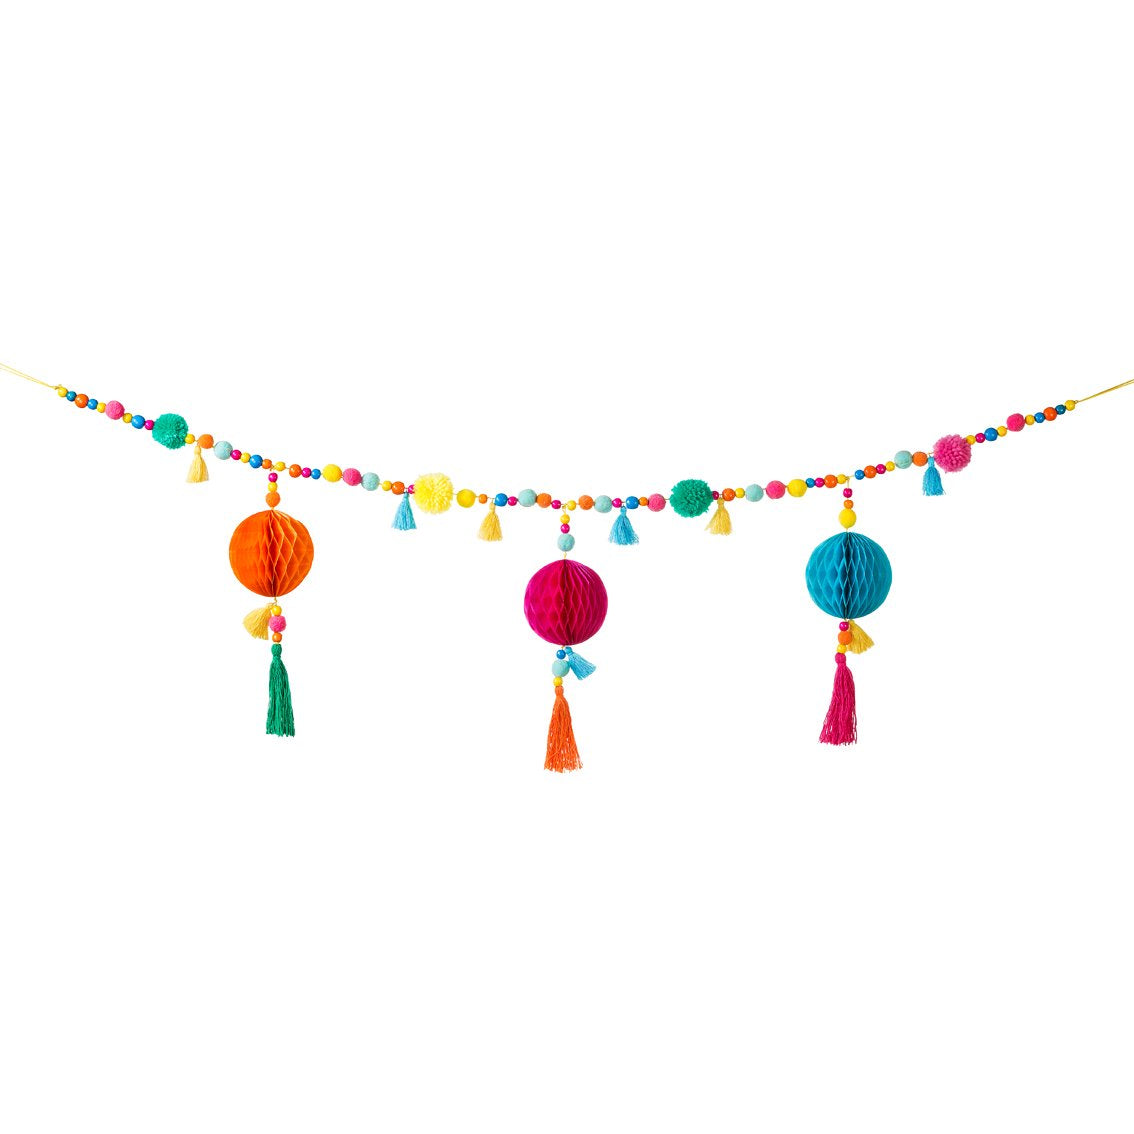 Boho Pom Pom Tassel Garland The Party Darling